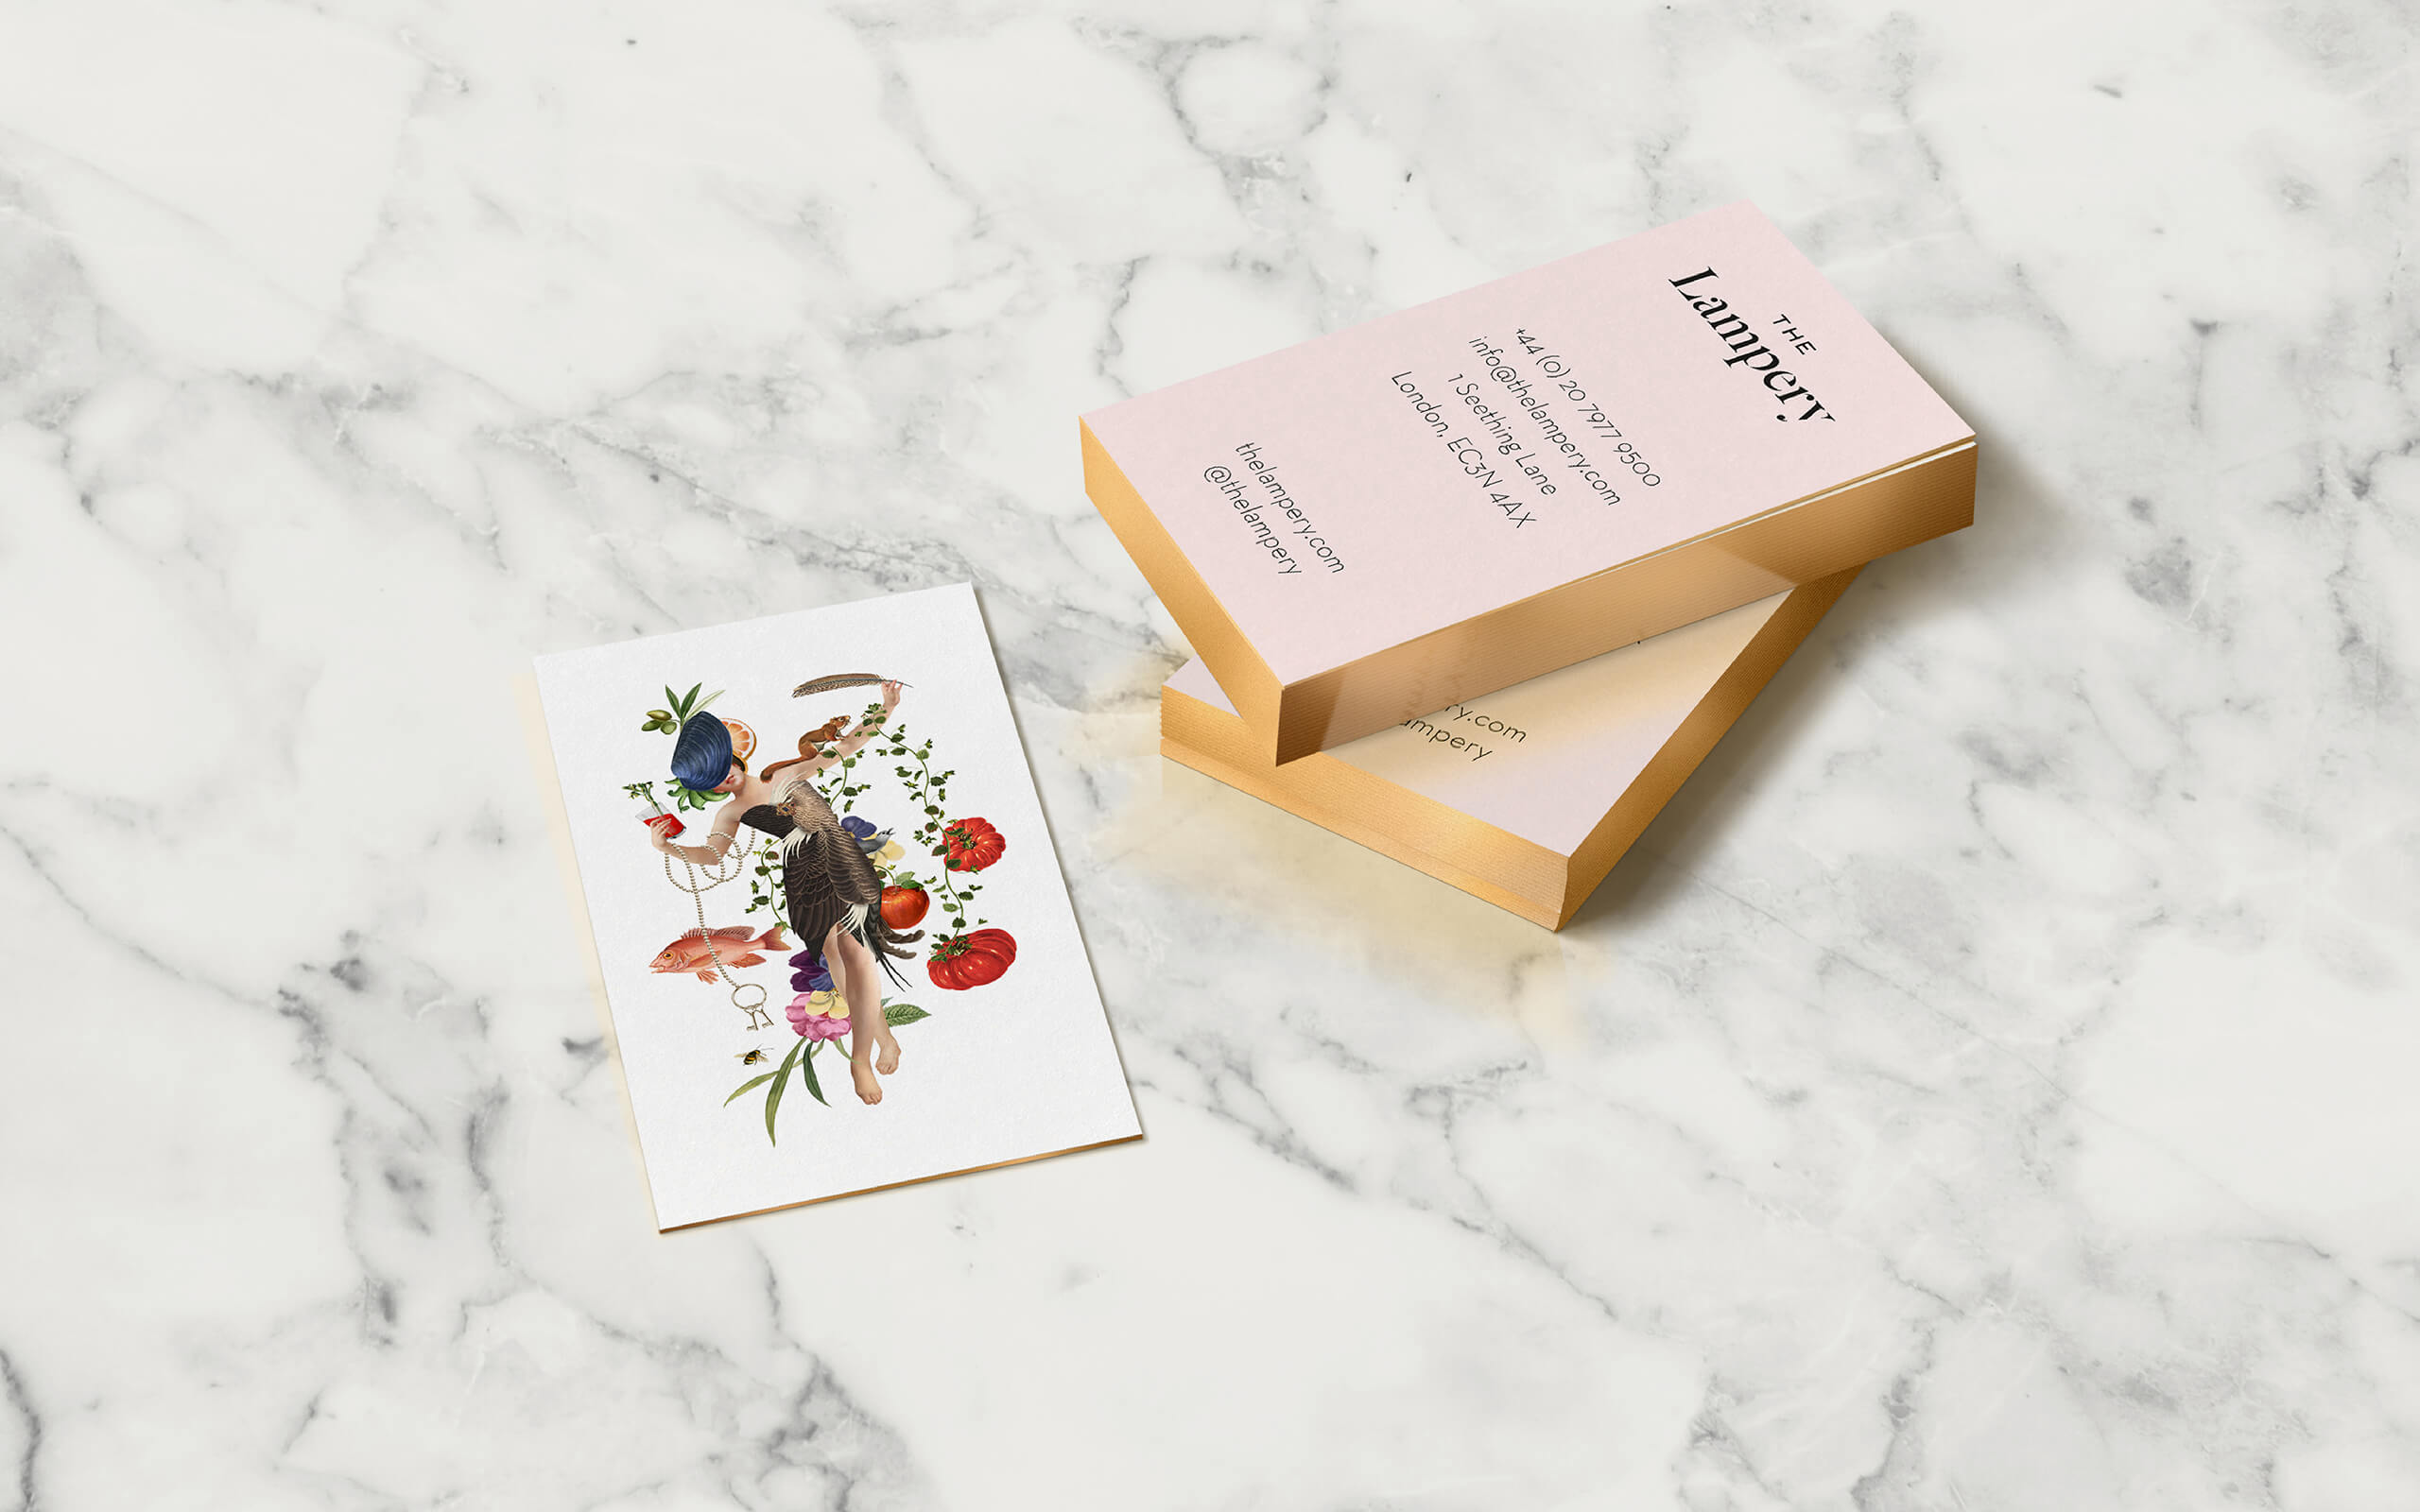 The Lampery business cards